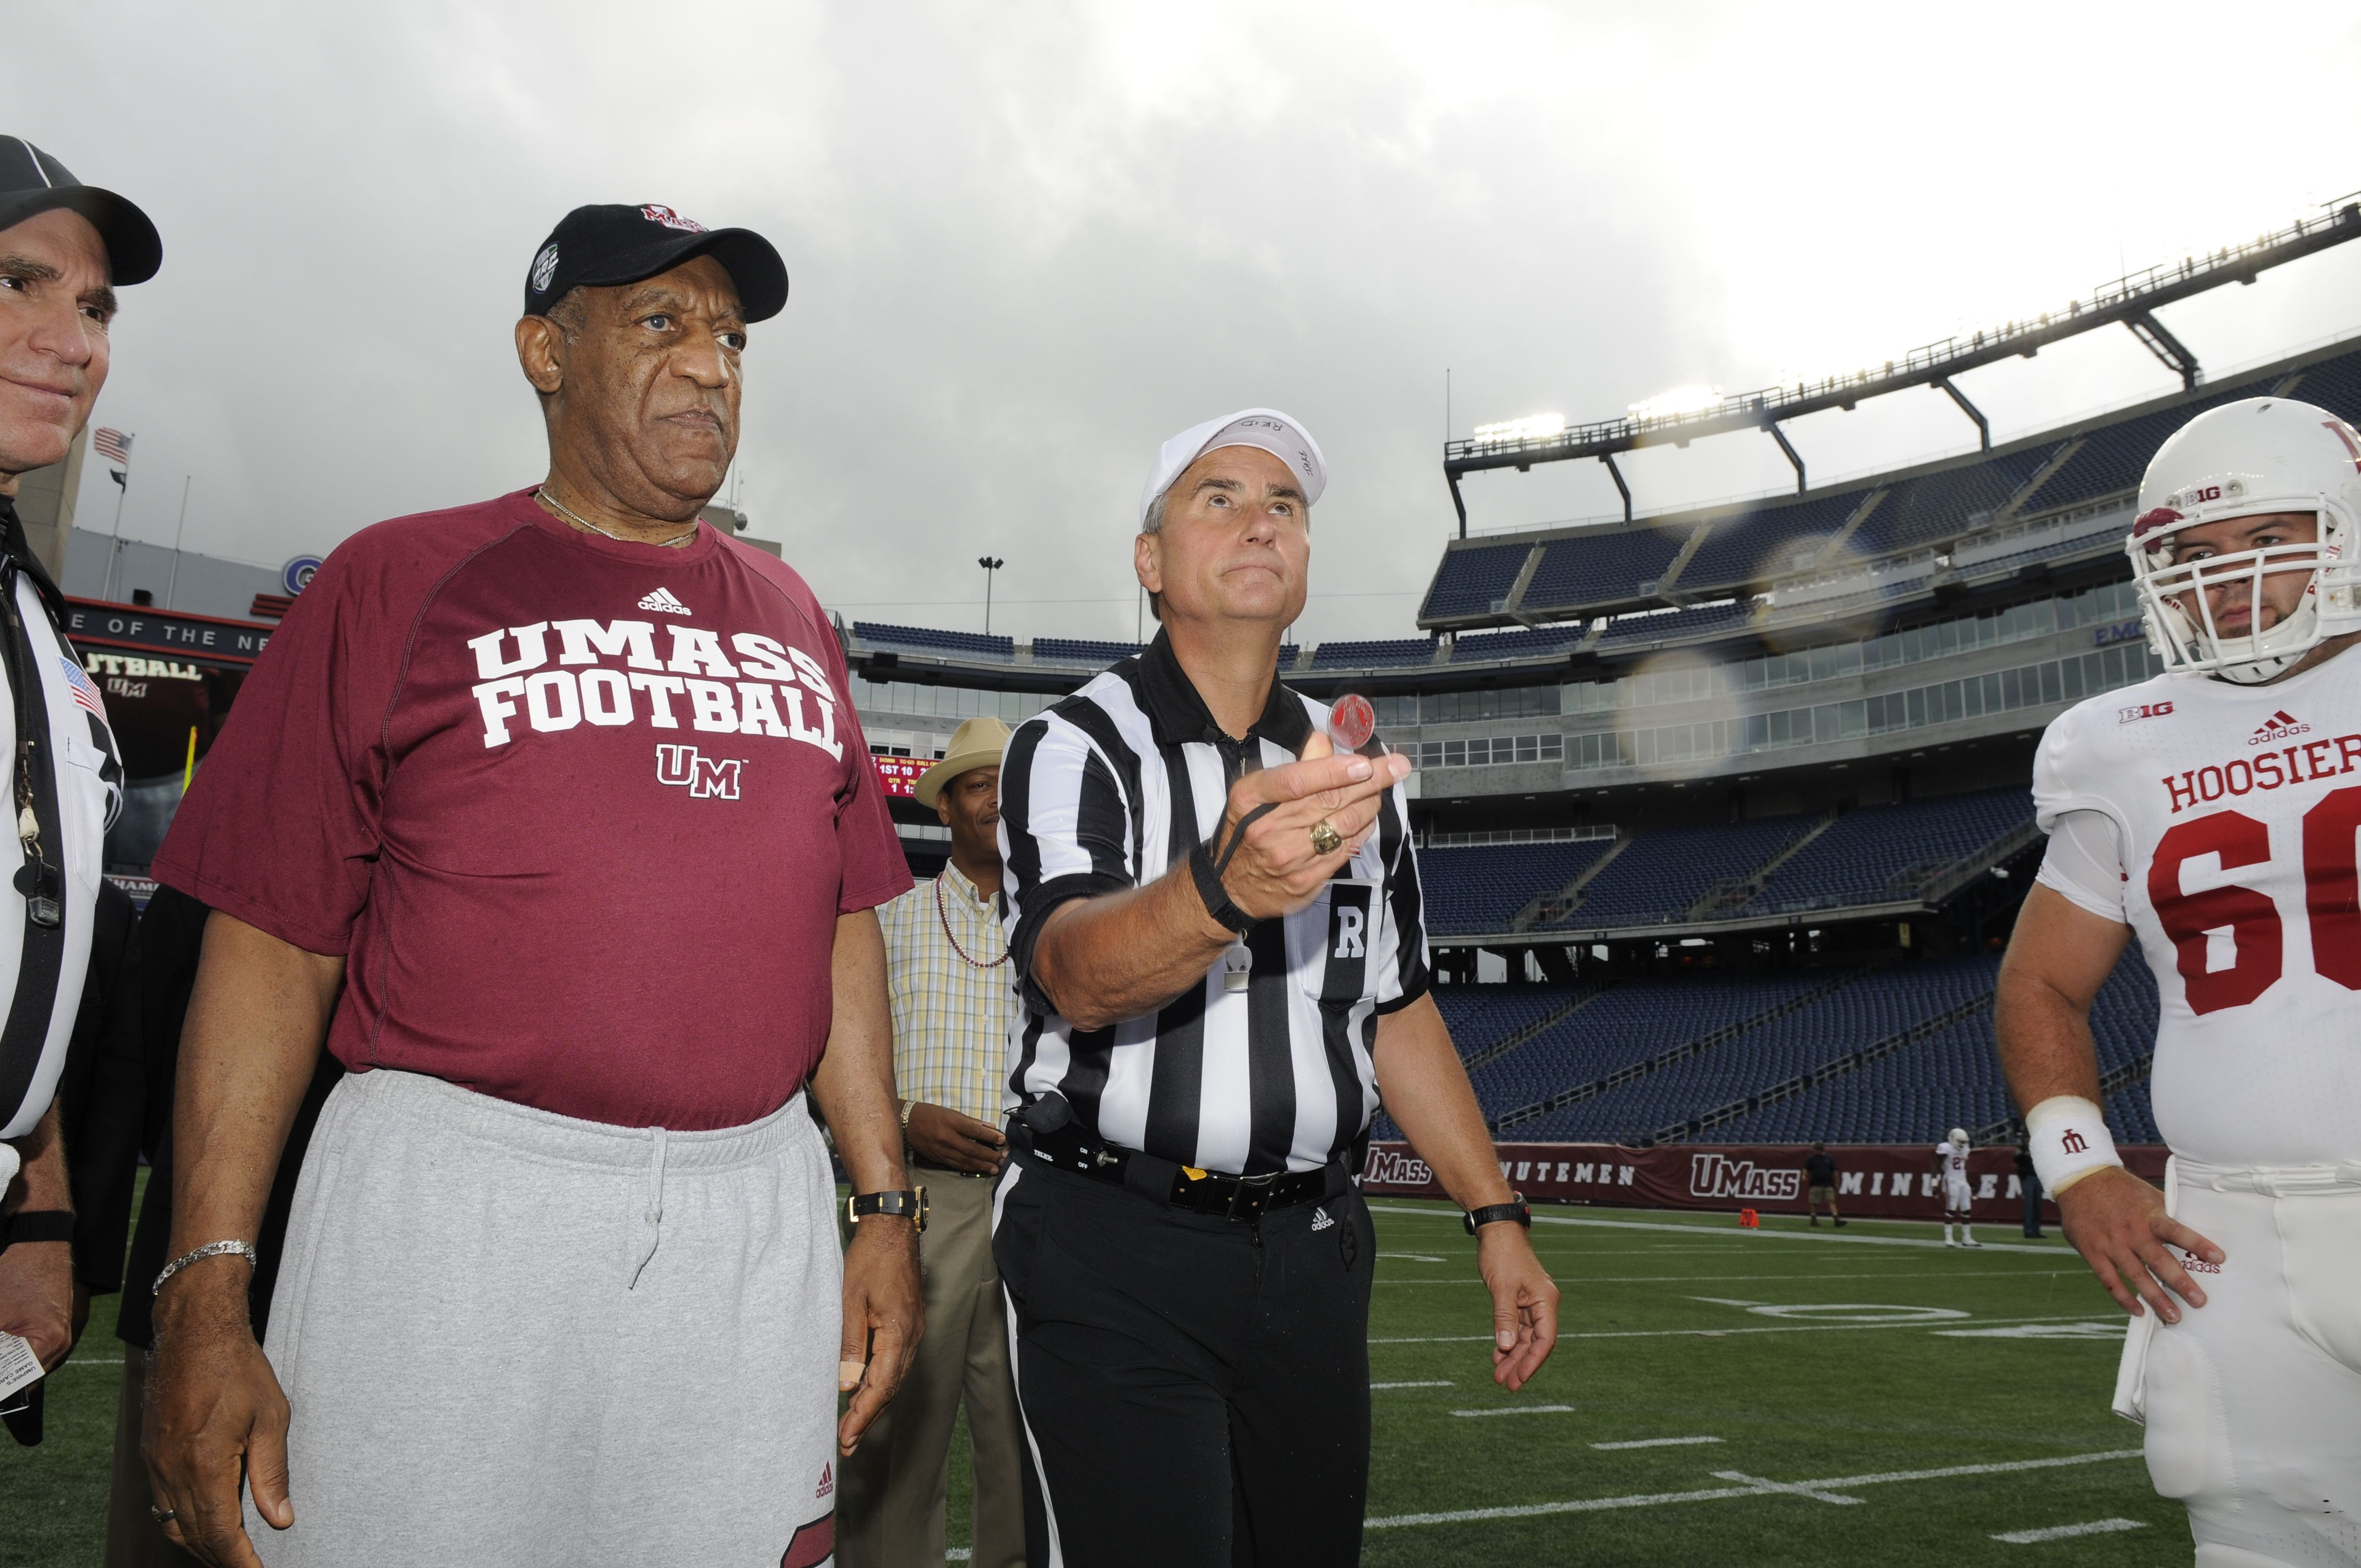 UMass alum Bill Cosby!